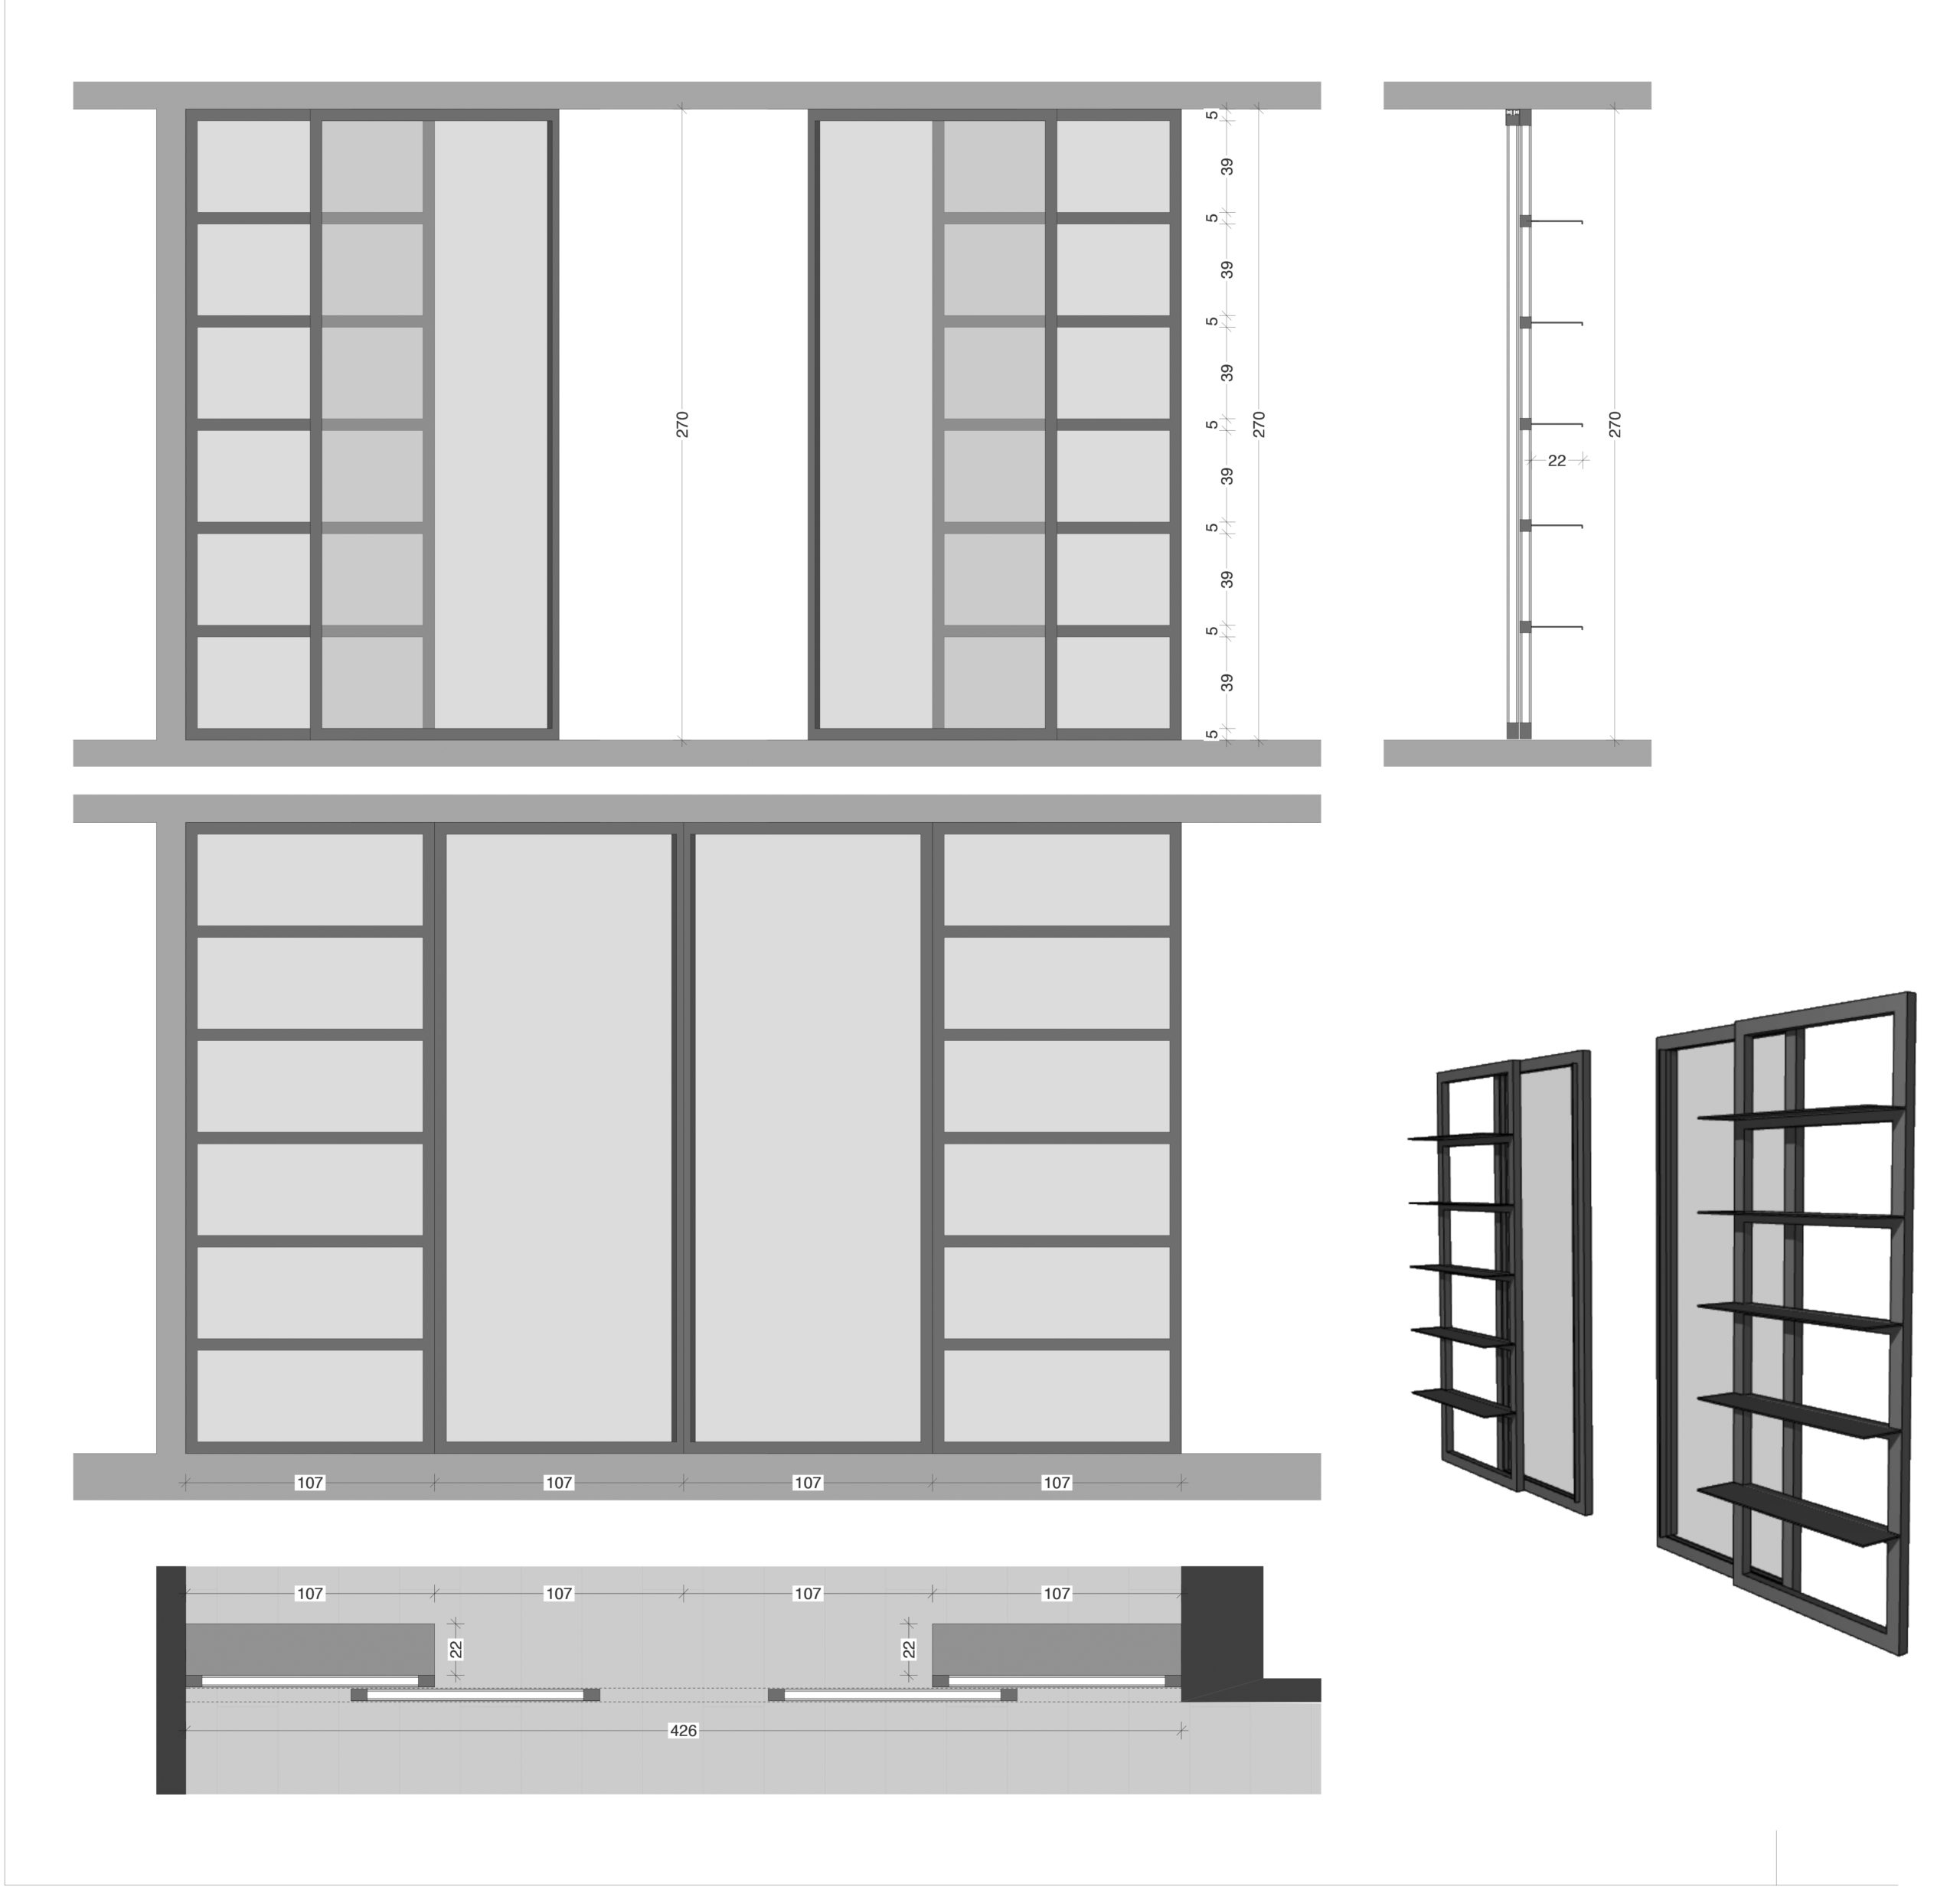 impennata studio _ Layout